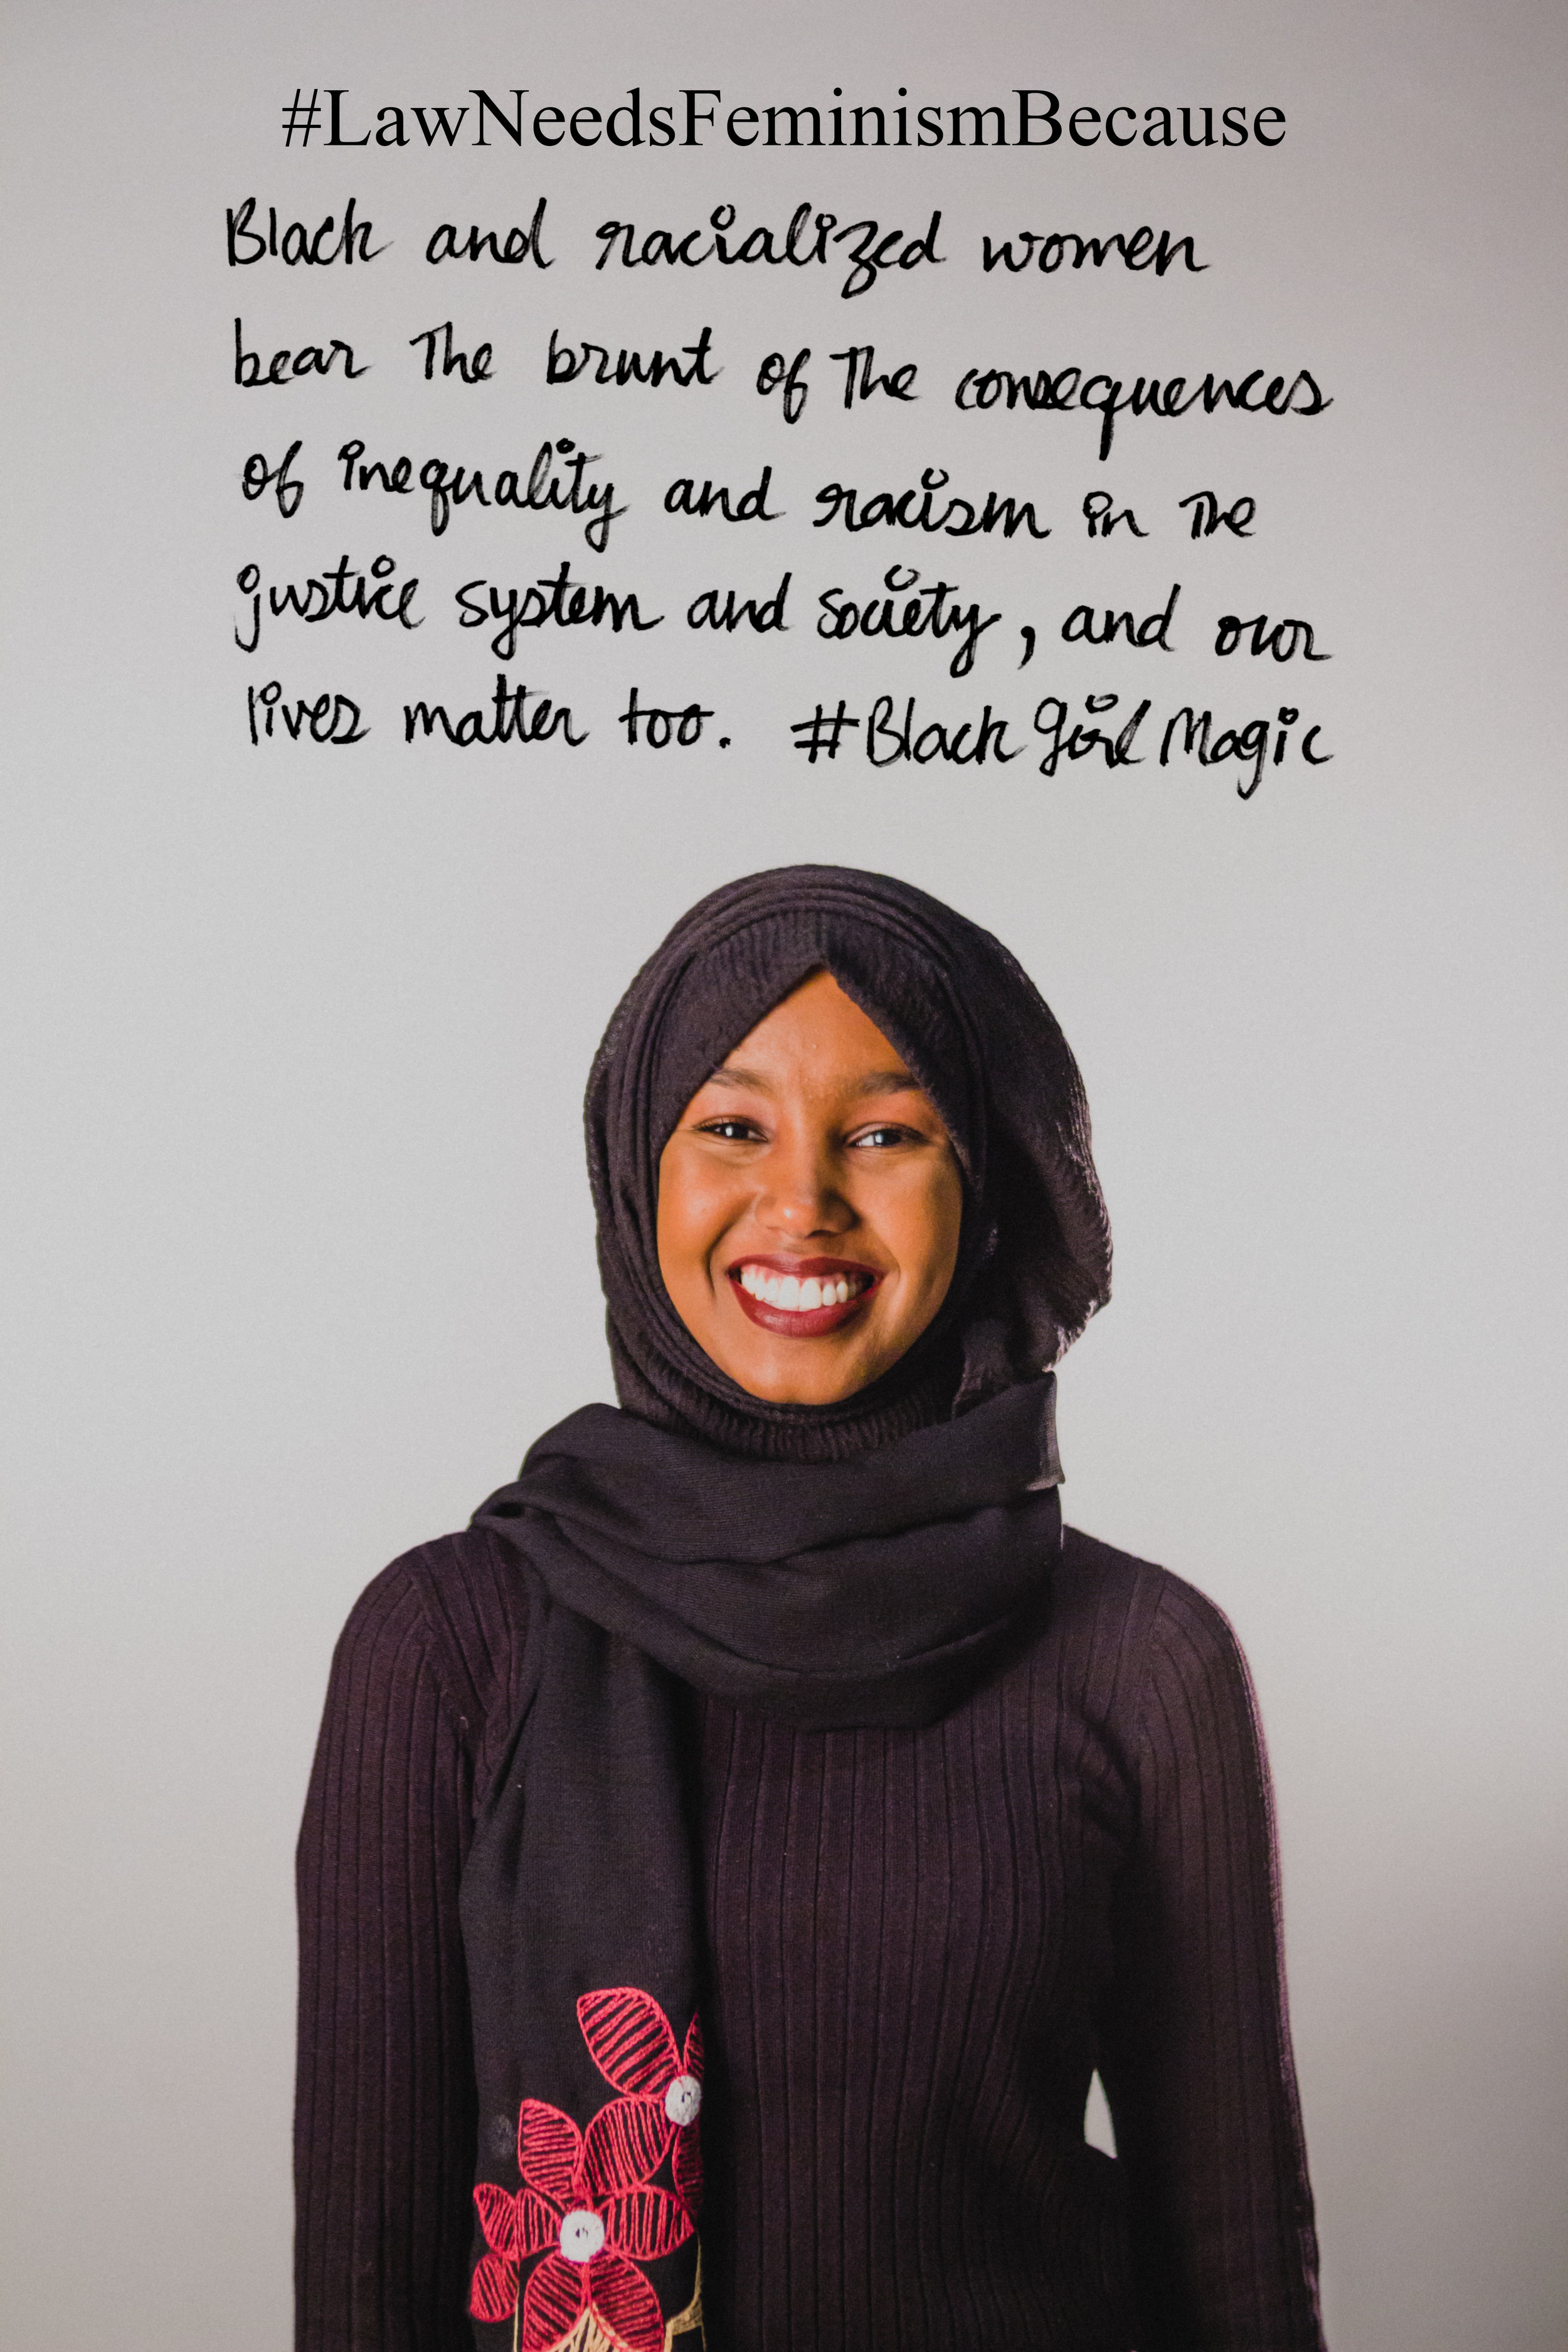 """Law Needs Feminism Because  """"Black and racialized women bear the brunt of the consequences of inequality and racism in the justice system and society, and our lives matter too. #BlackGirlMagic"""""""